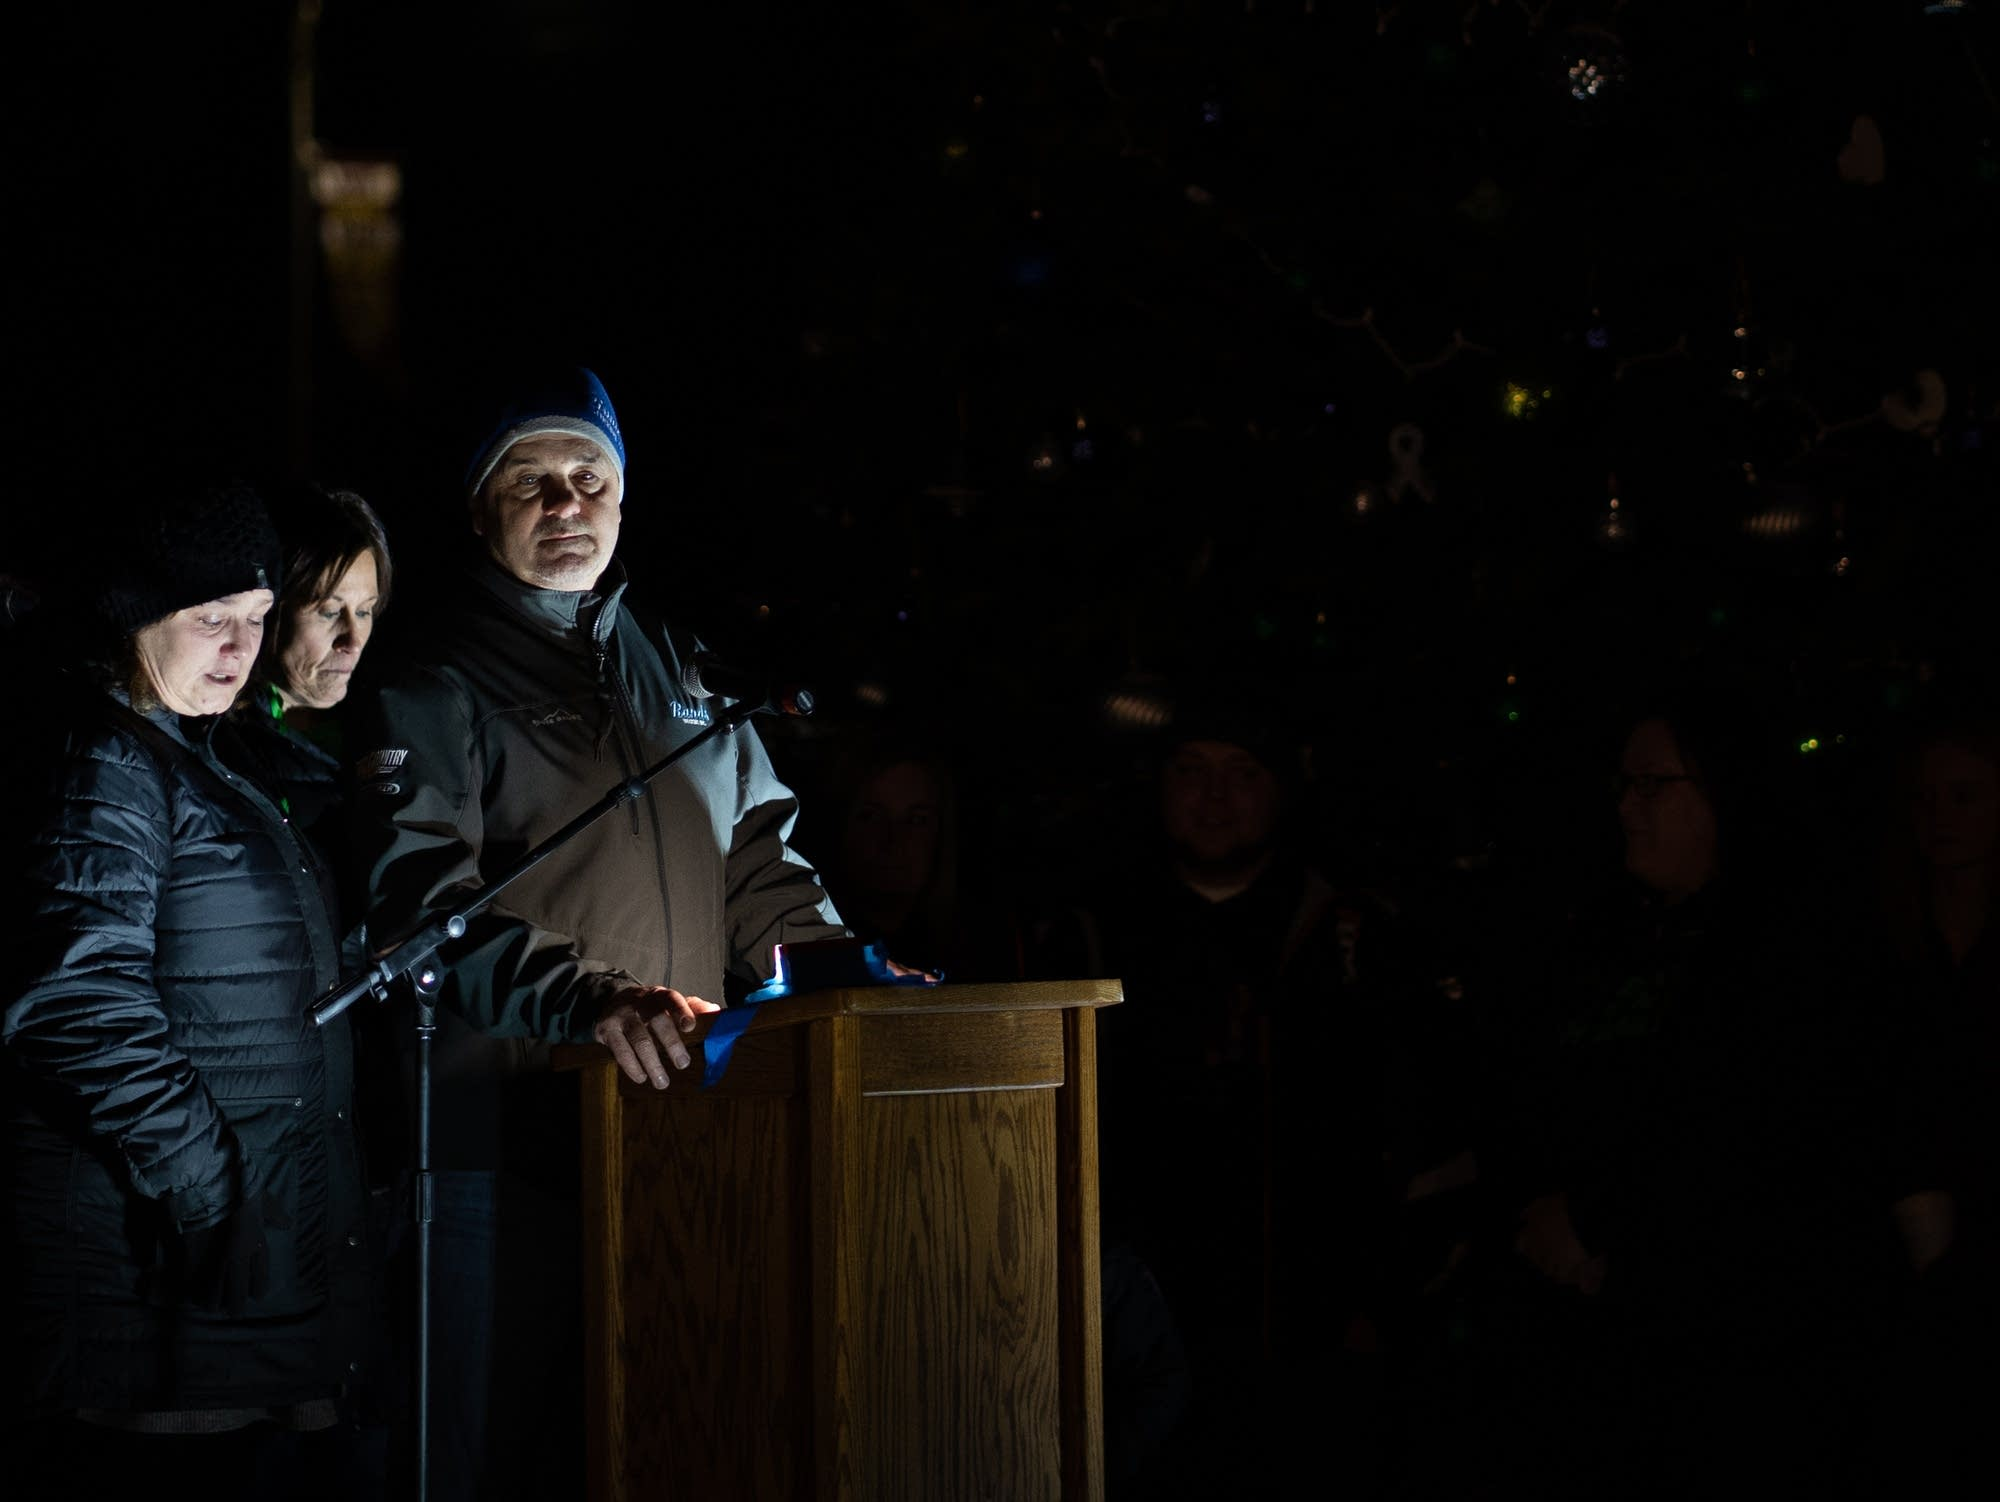 James Closs' brother, Mike Closs speaks at a tree lighting ceremony.